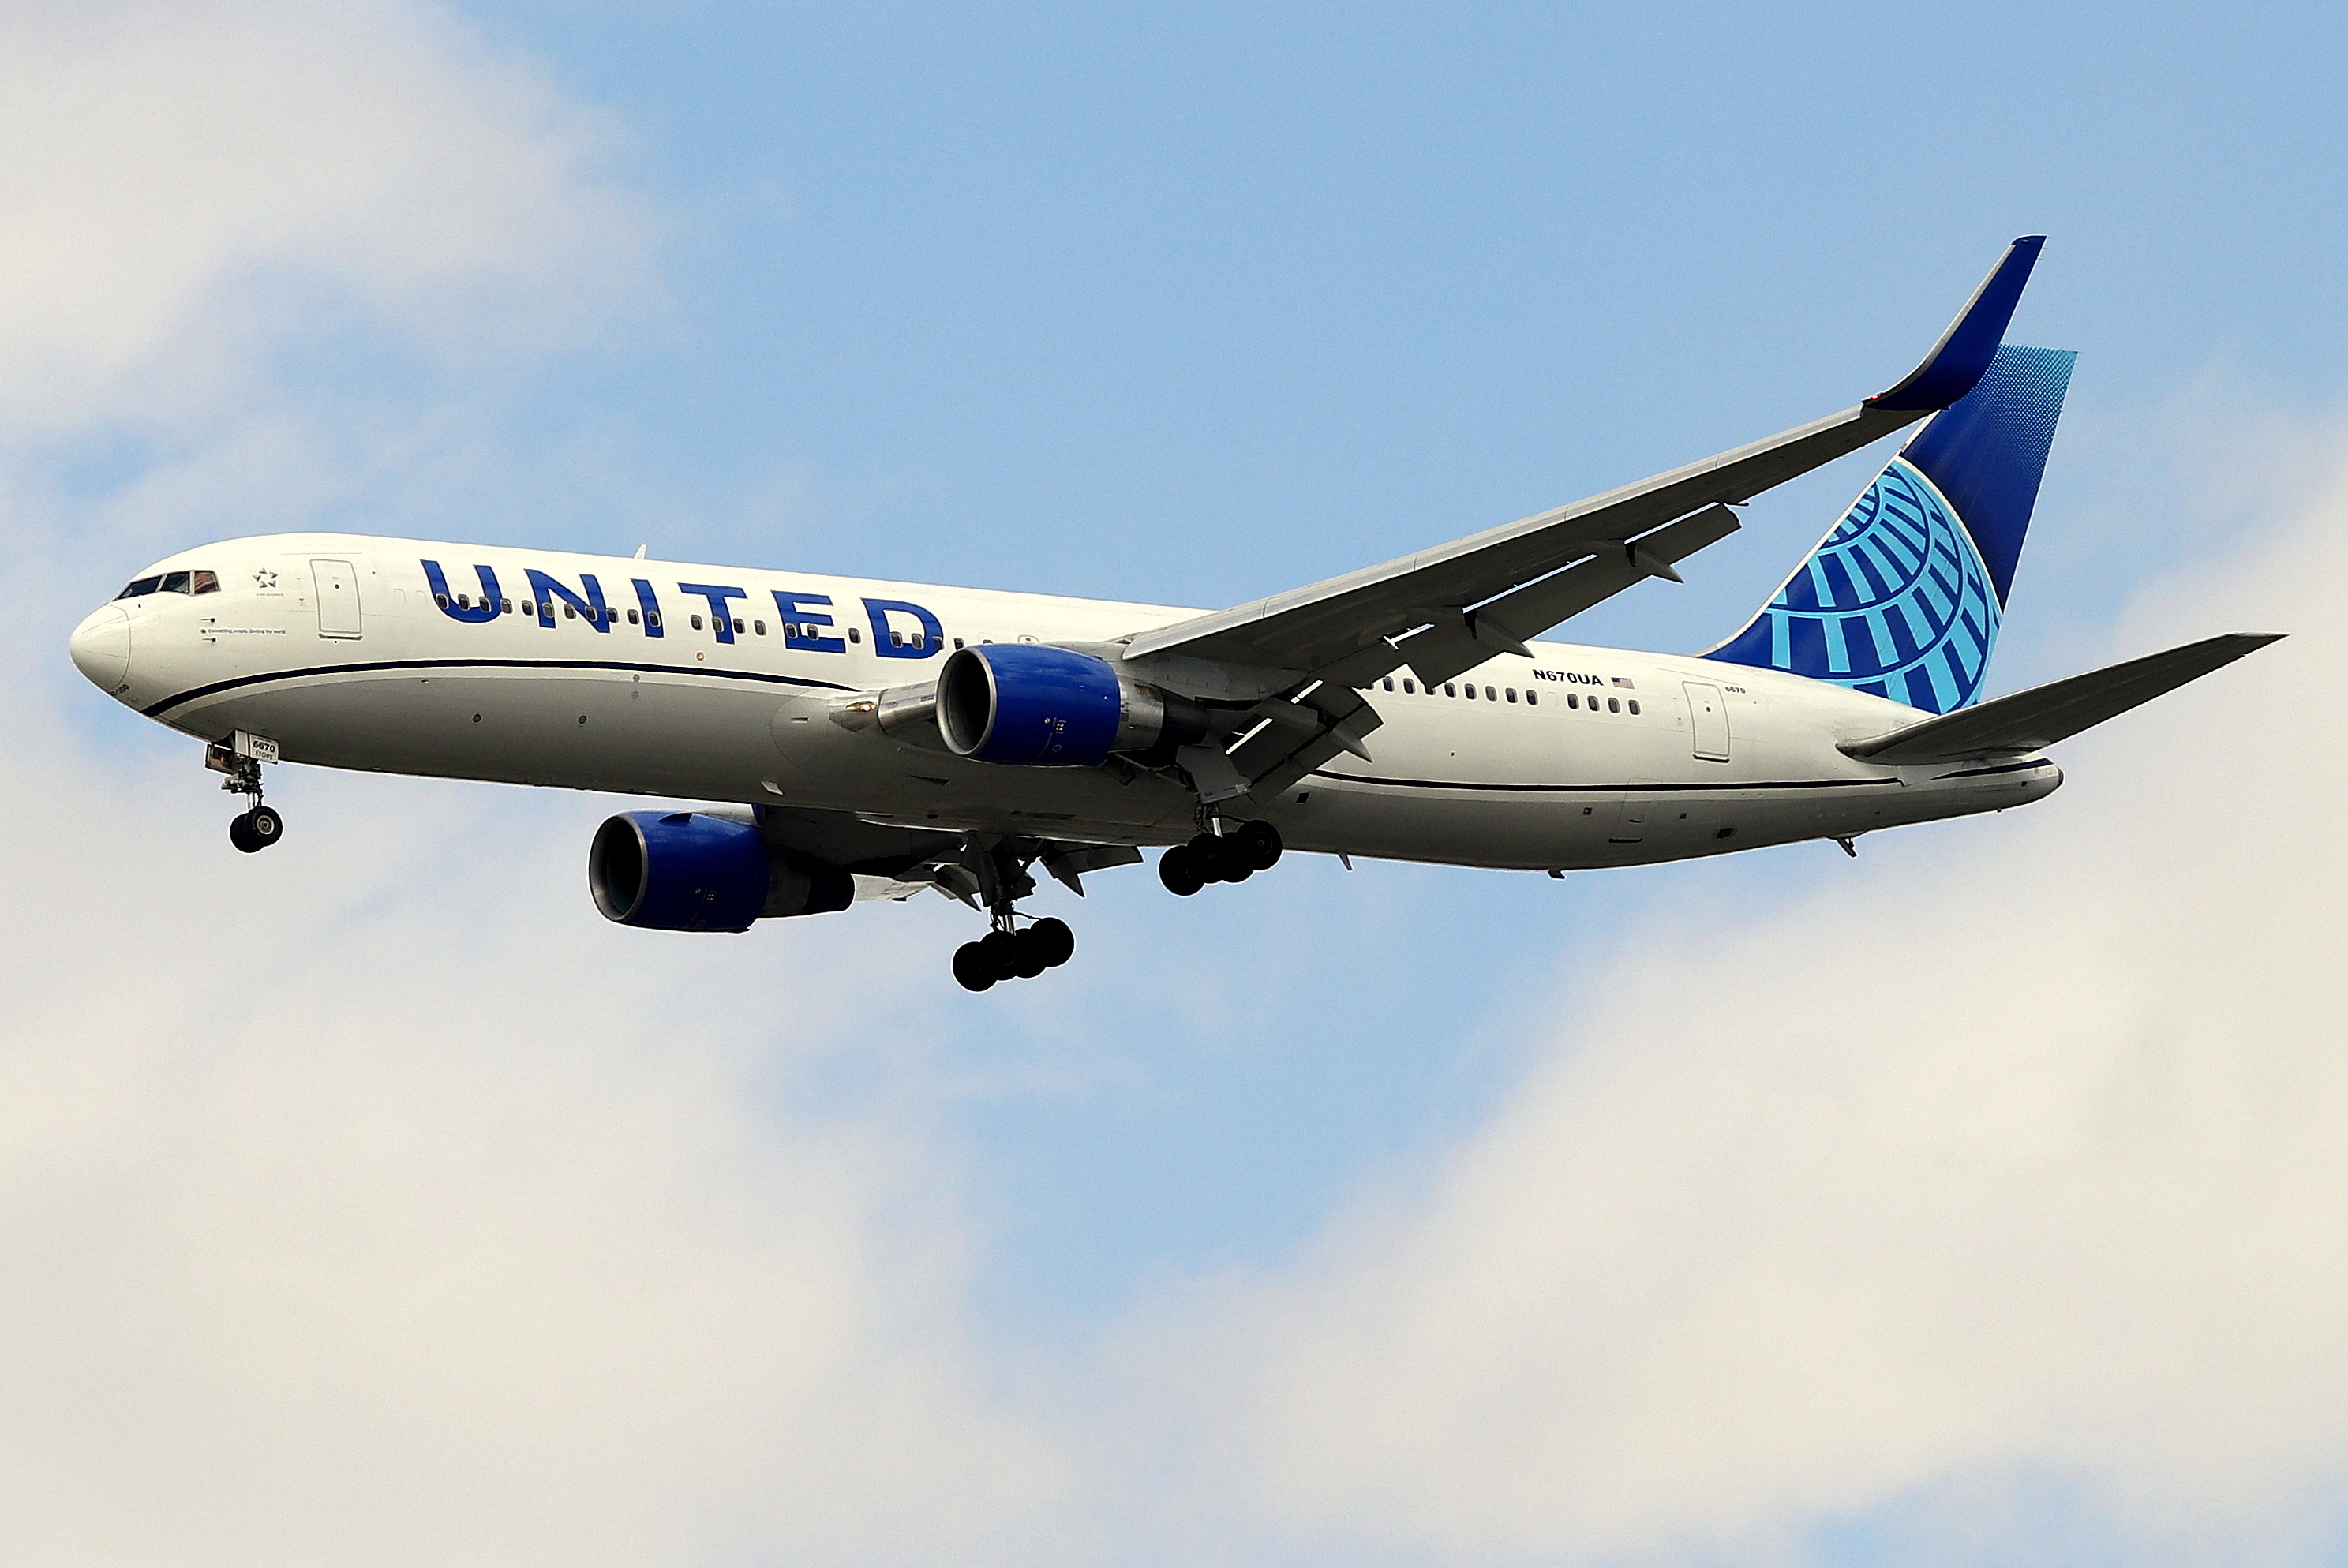 FA-for-airlines-image-3